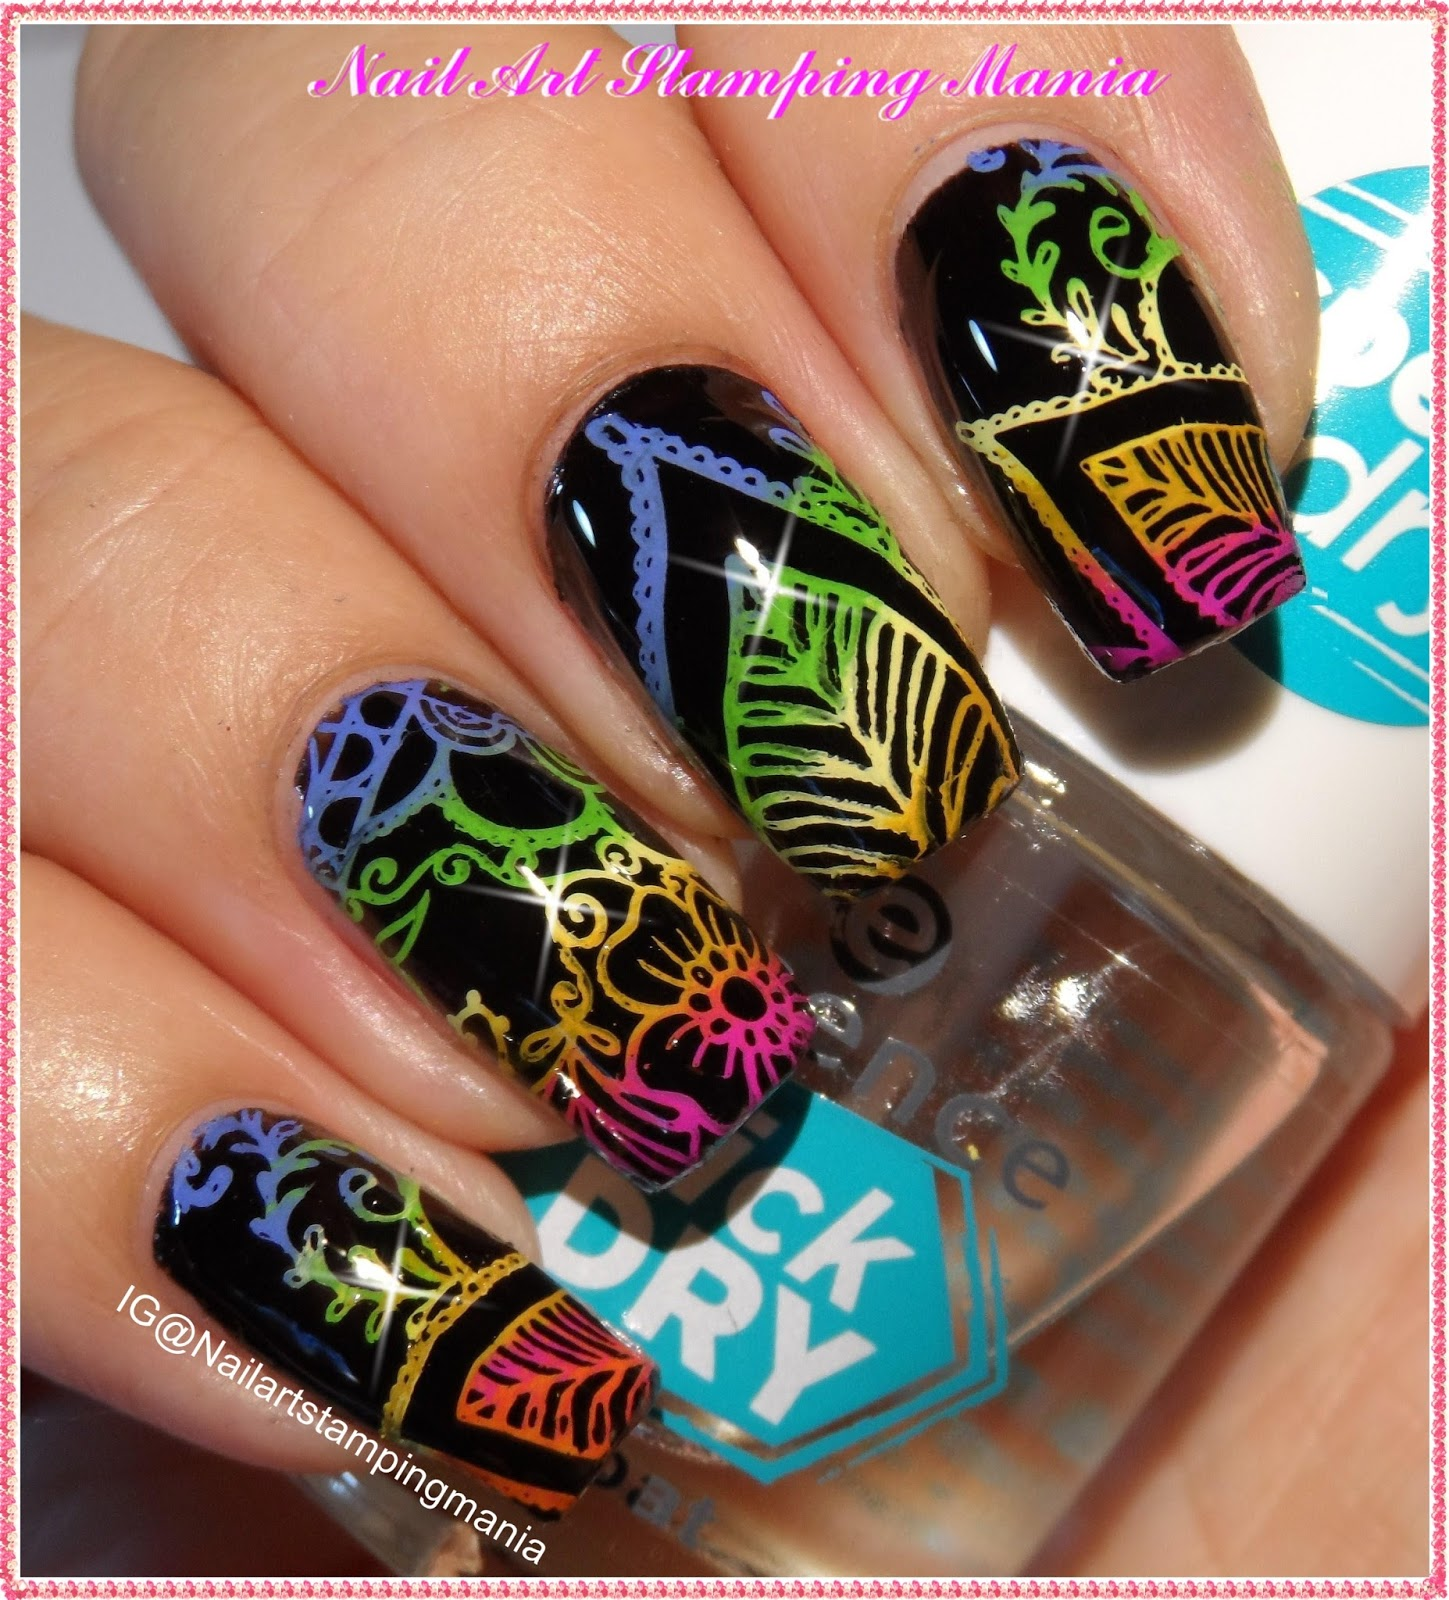 Nail Art Stamping Mania: UberChic Beauty Mandala Love - Uber Mini ...